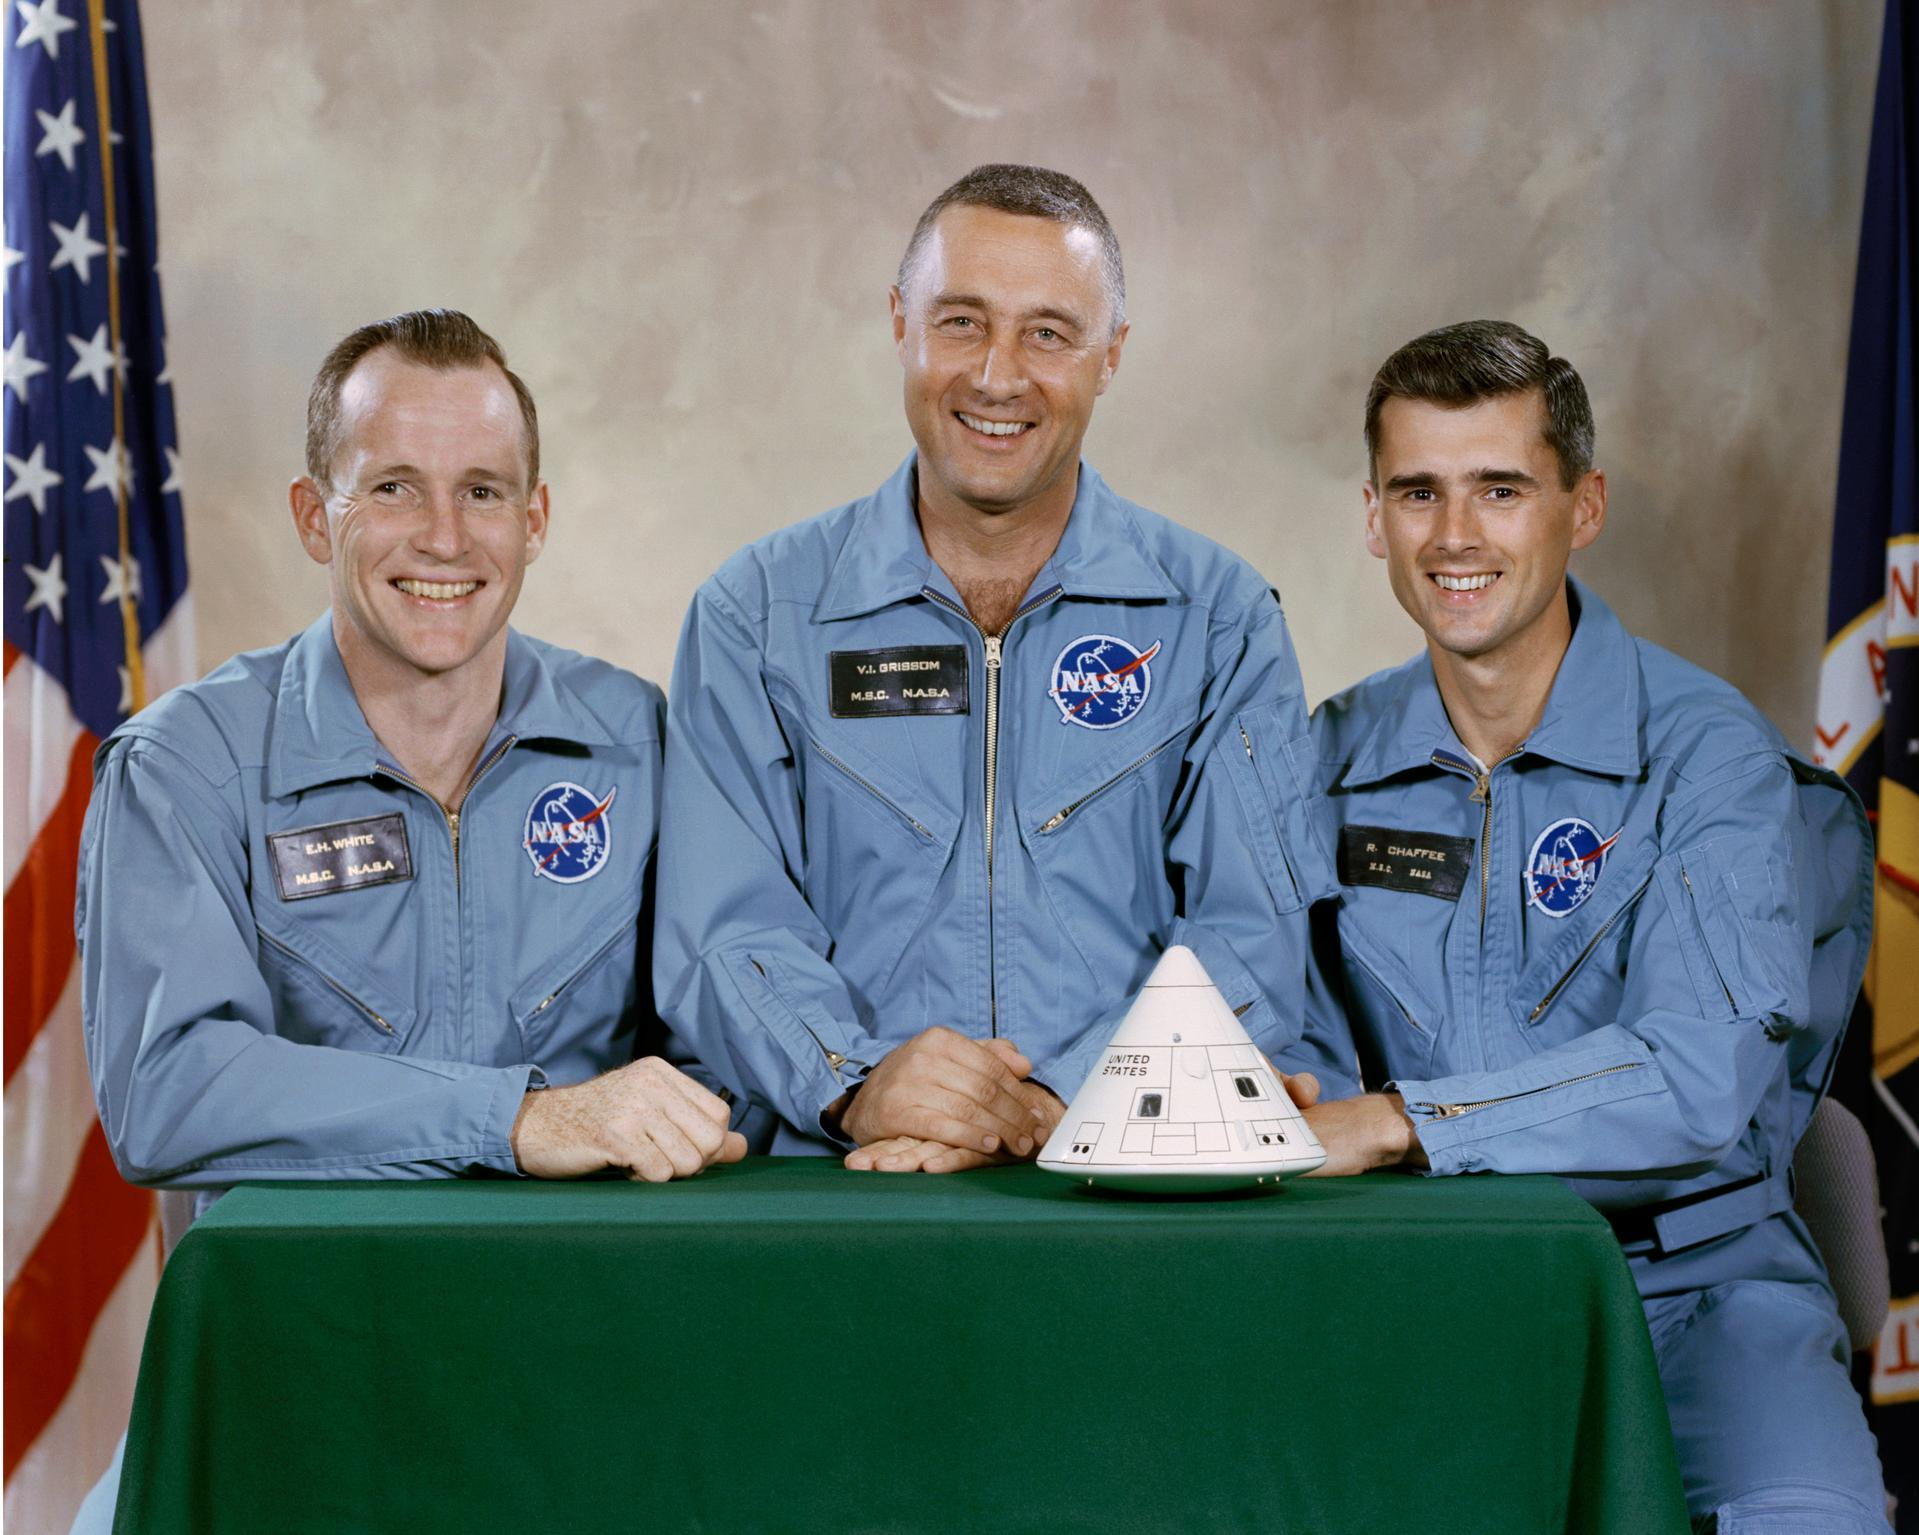 The prime crew of Apollo 1 posing with a model of their capsule (L-r): Ed White, Gus Grissom, and Roger Chaffee. (NASA photo)